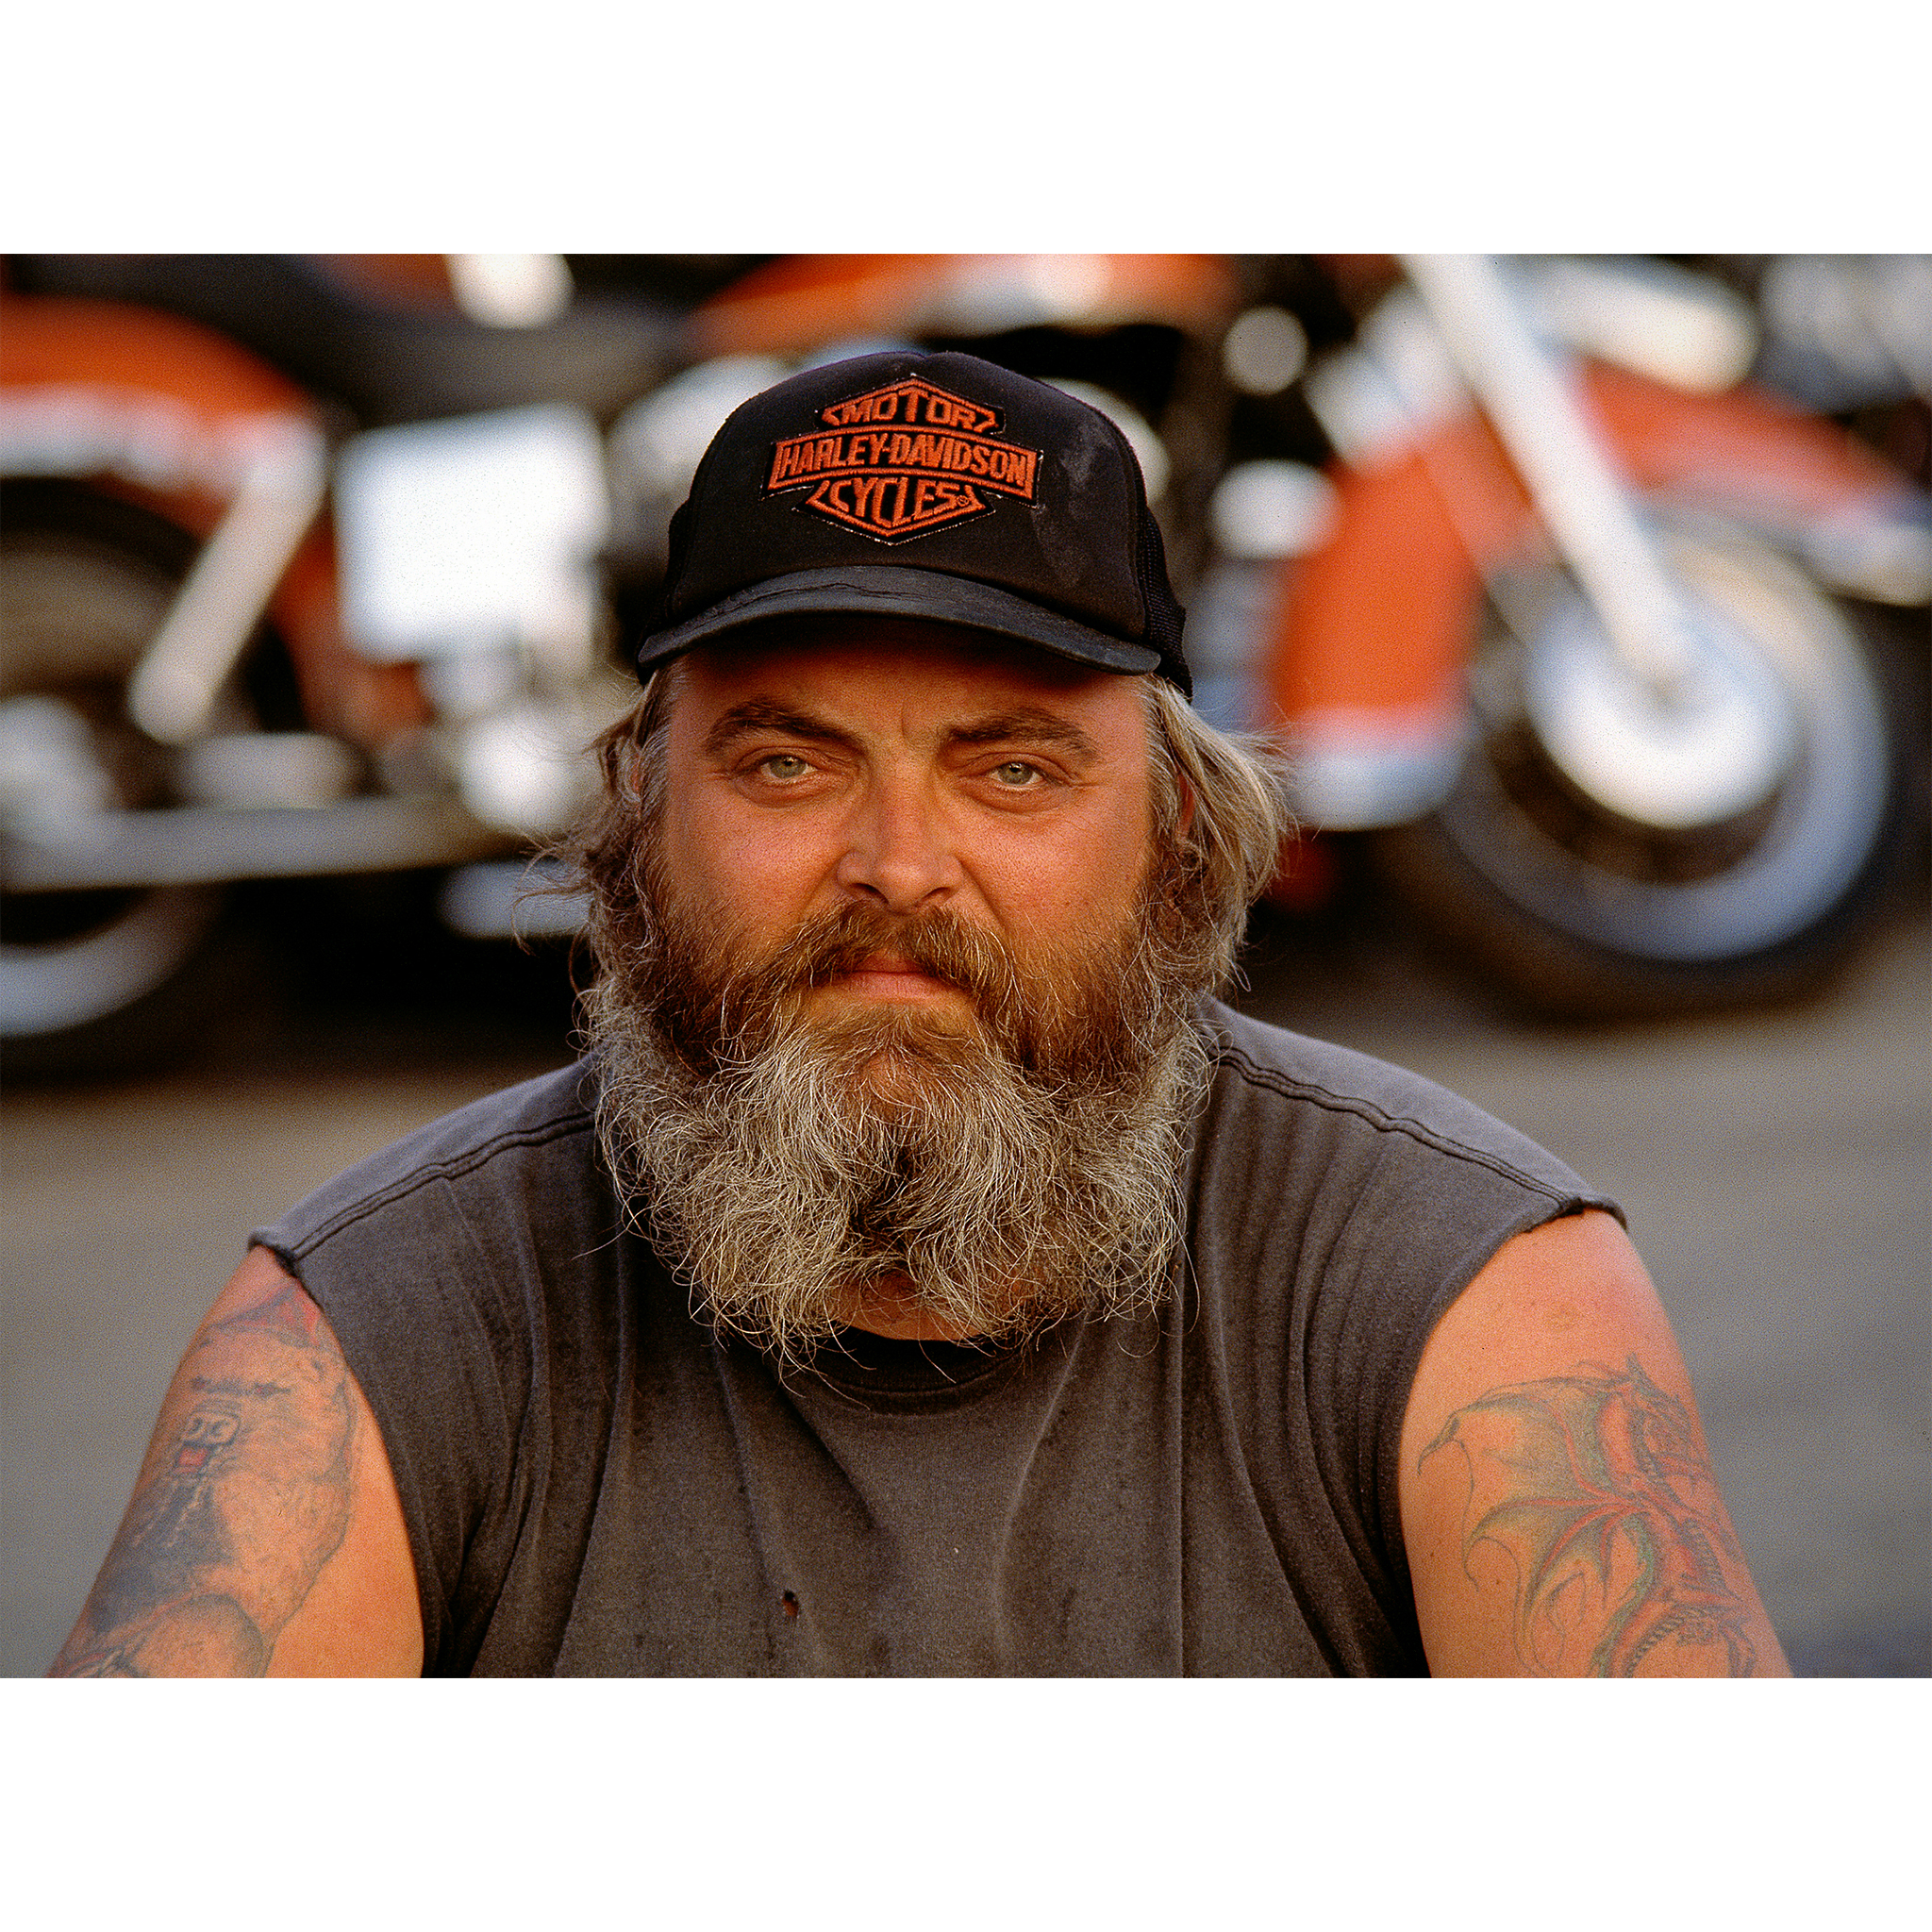 Man in Harley-Davidson hat with tattoos and motorcycle in background